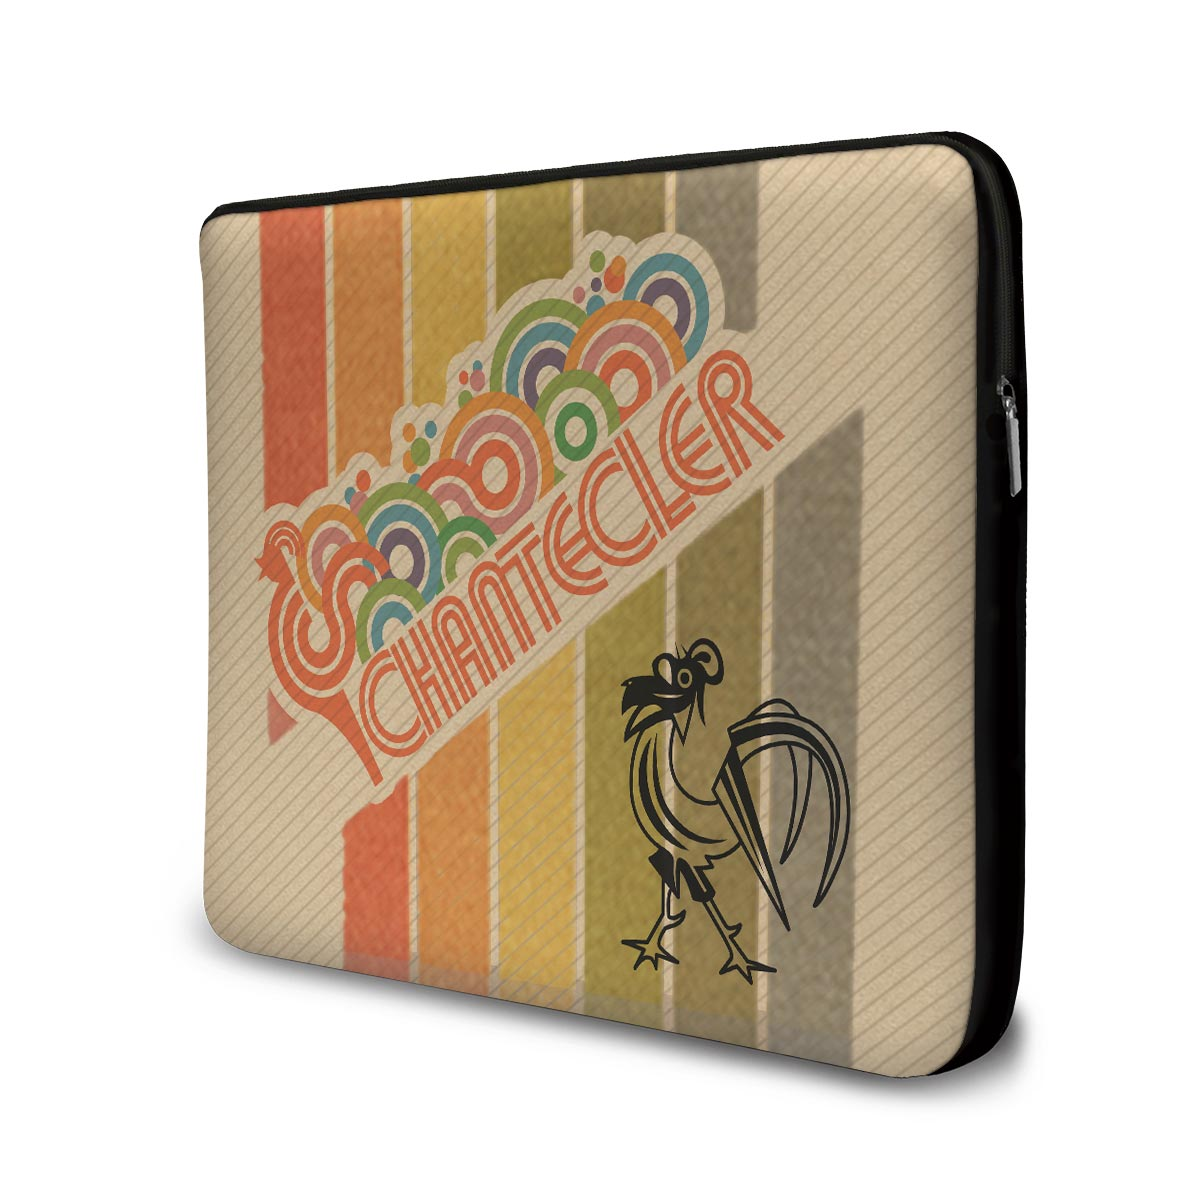 Capa para Notebook Chantecler 2